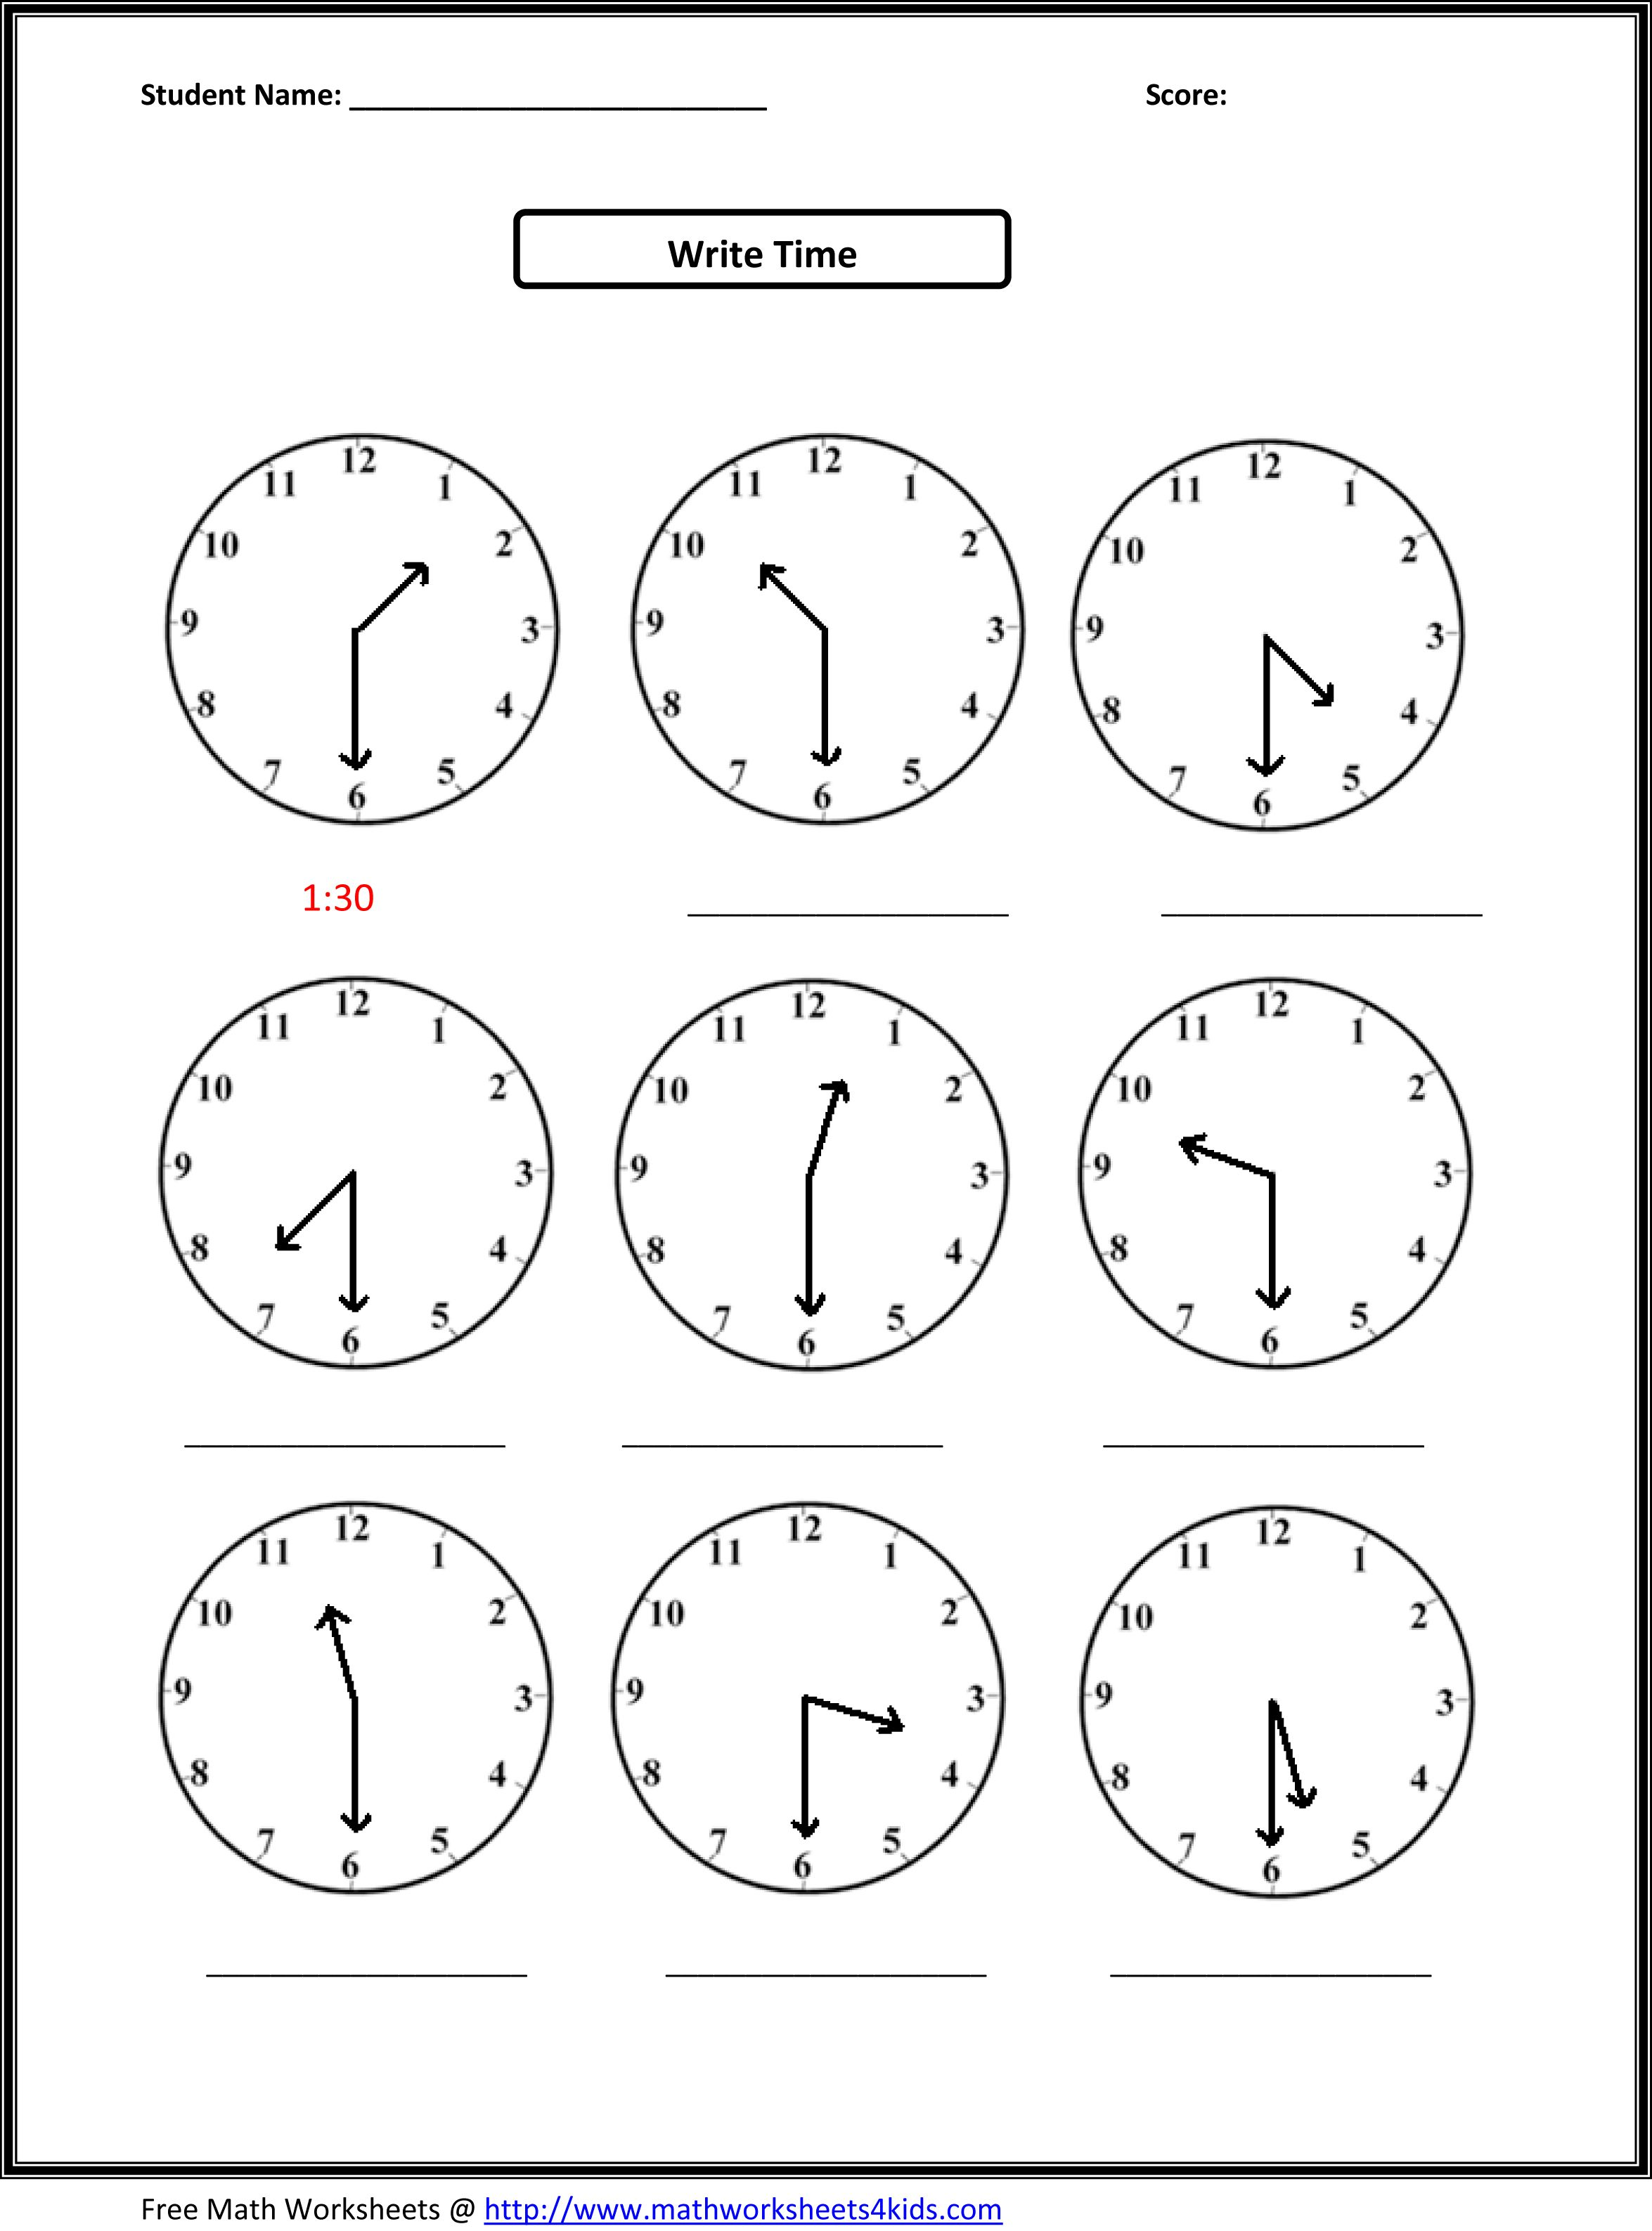 Proatmealus  Marvelous Worksheet On Time For Grade   Reocurent With Great Free Printable Telling Time Worksheets Nd Grade  Reocurent With Lovely Kindergarten Valentine Worksheets Also Penmanship Practice Worksheets For Adults In Addition Measuring Lines Worksheet And Sum Of Interior Angles Of A Polygon Worksheet As Well As Addition Equations Worksheets Additionally Plan Do Study Act Worksheet From Reocurentcom With Proatmealus  Great Worksheet On Time For Grade   Reocurent With Lovely Free Printable Telling Time Worksheets Nd Grade  Reocurent And Marvelous Kindergarten Valentine Worksheets Also Penmanship Practice Worksheets For Adults In Addition Measuring Lines Worksheet From Reocurentcom